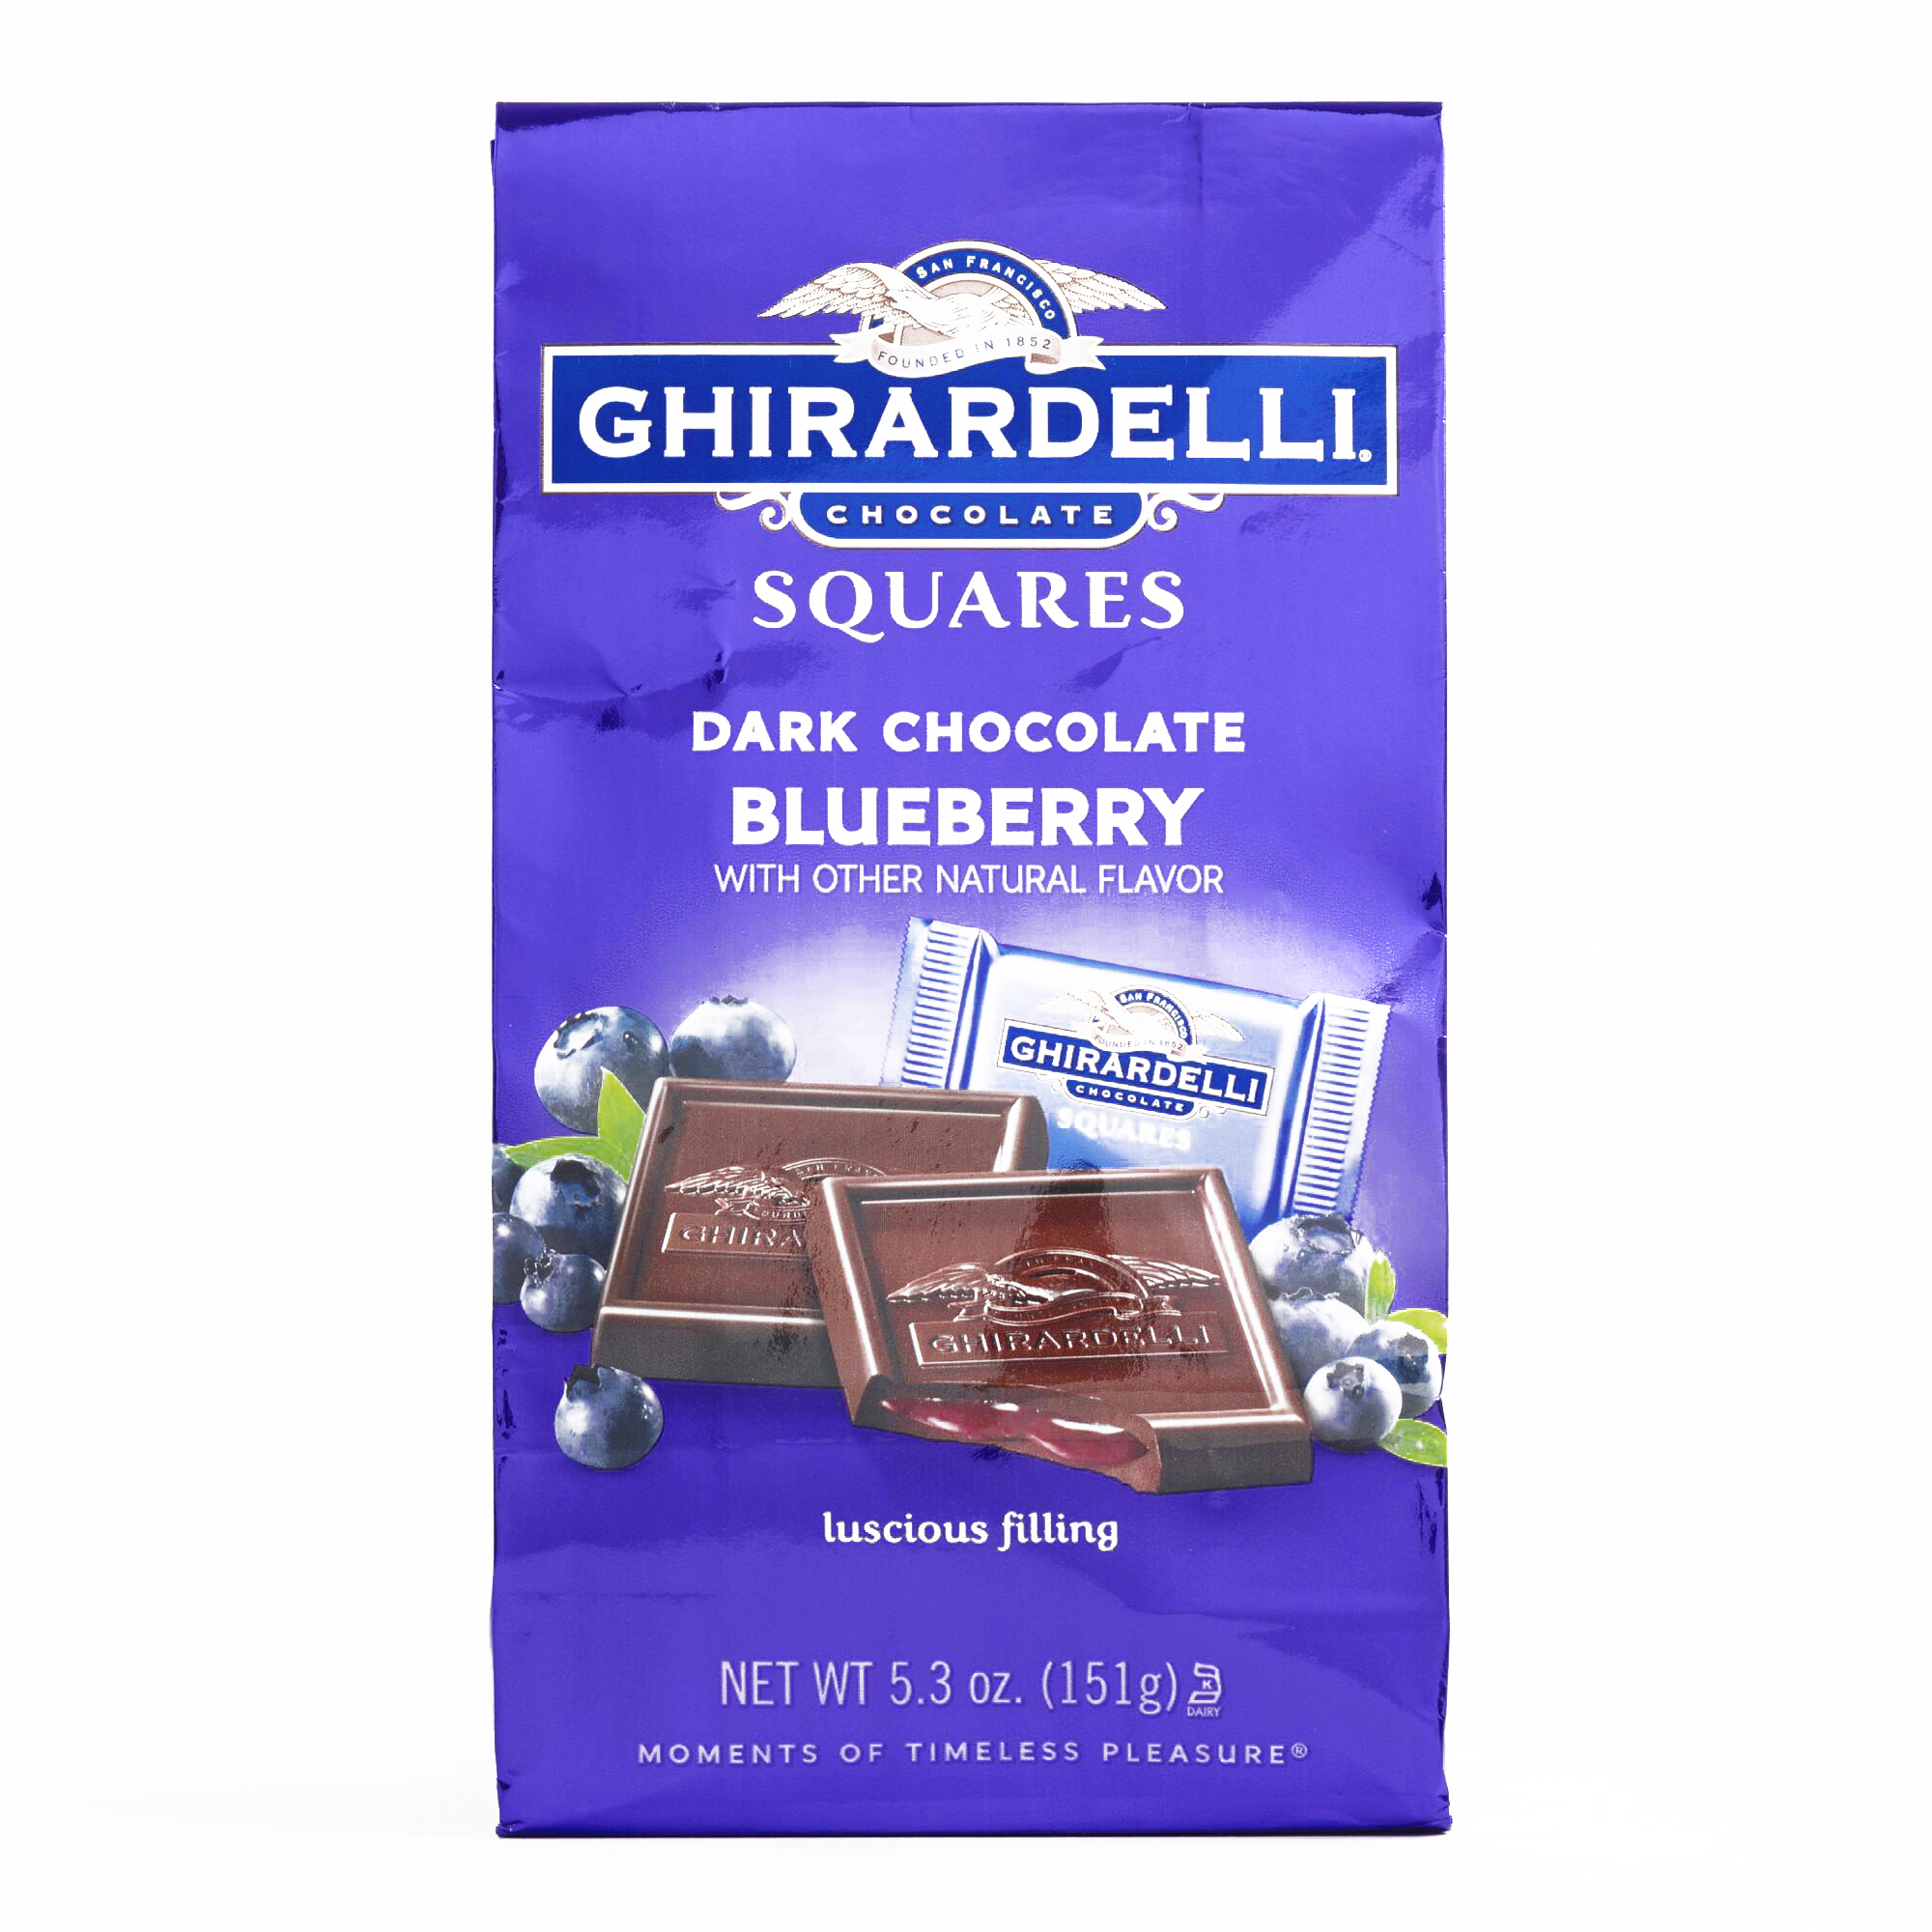 Dark Chocolate Blueberry Squares Bag 	5.3 oz each (3 Items Per Order, not per case)